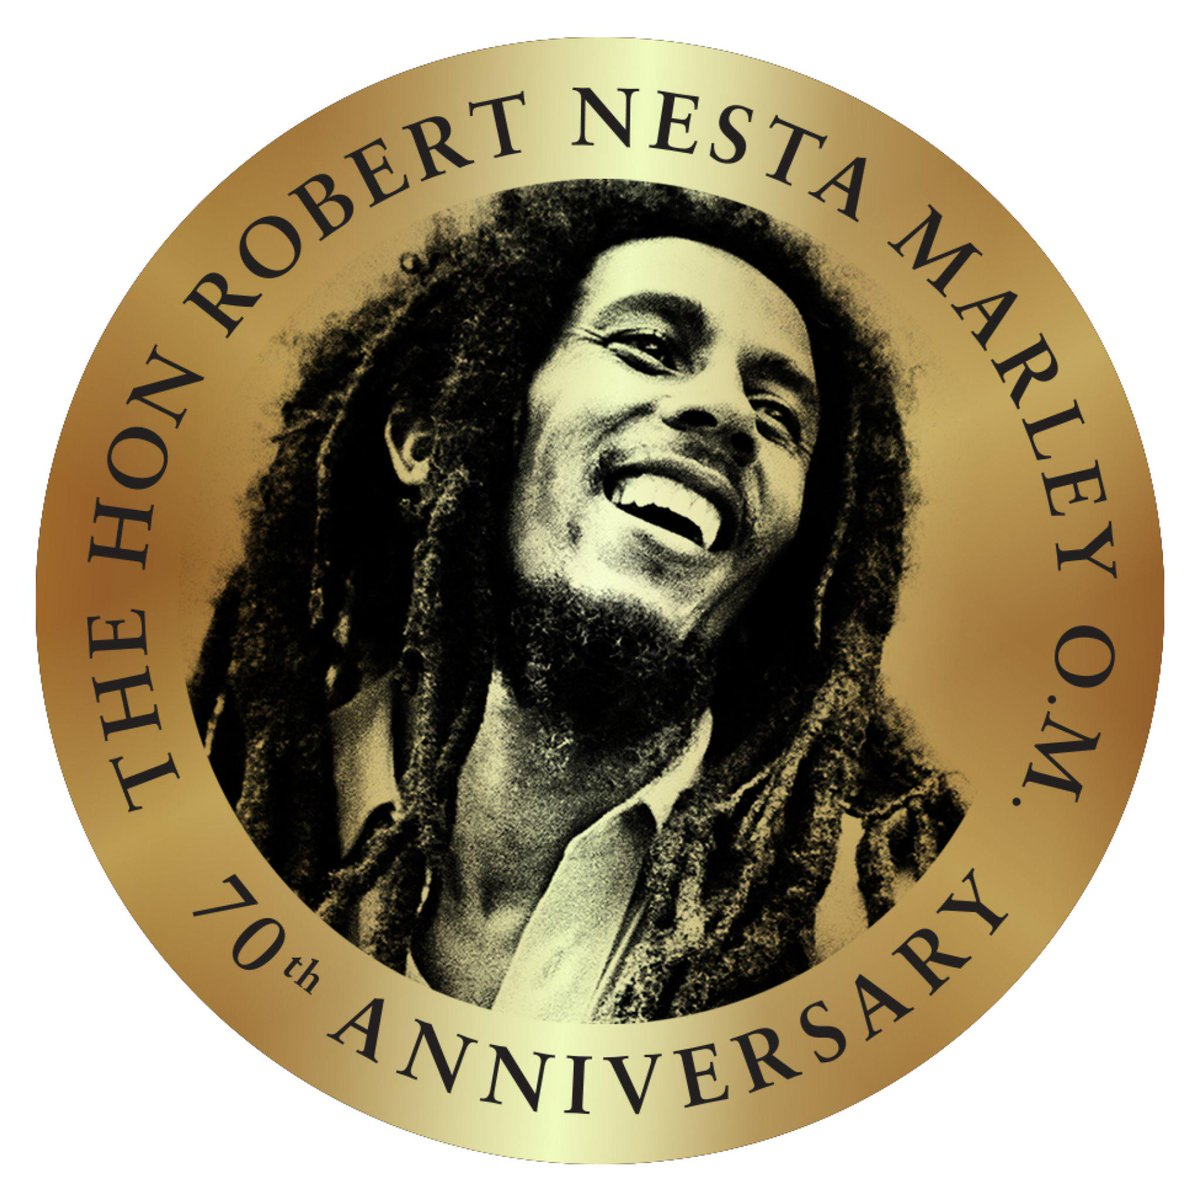 I have had the honor&blessing to work w/The Marley Family for 18 years& today is ALWAYS a TRUE celebration!#Marley70 http://t.co/EiZv5EEgRJ